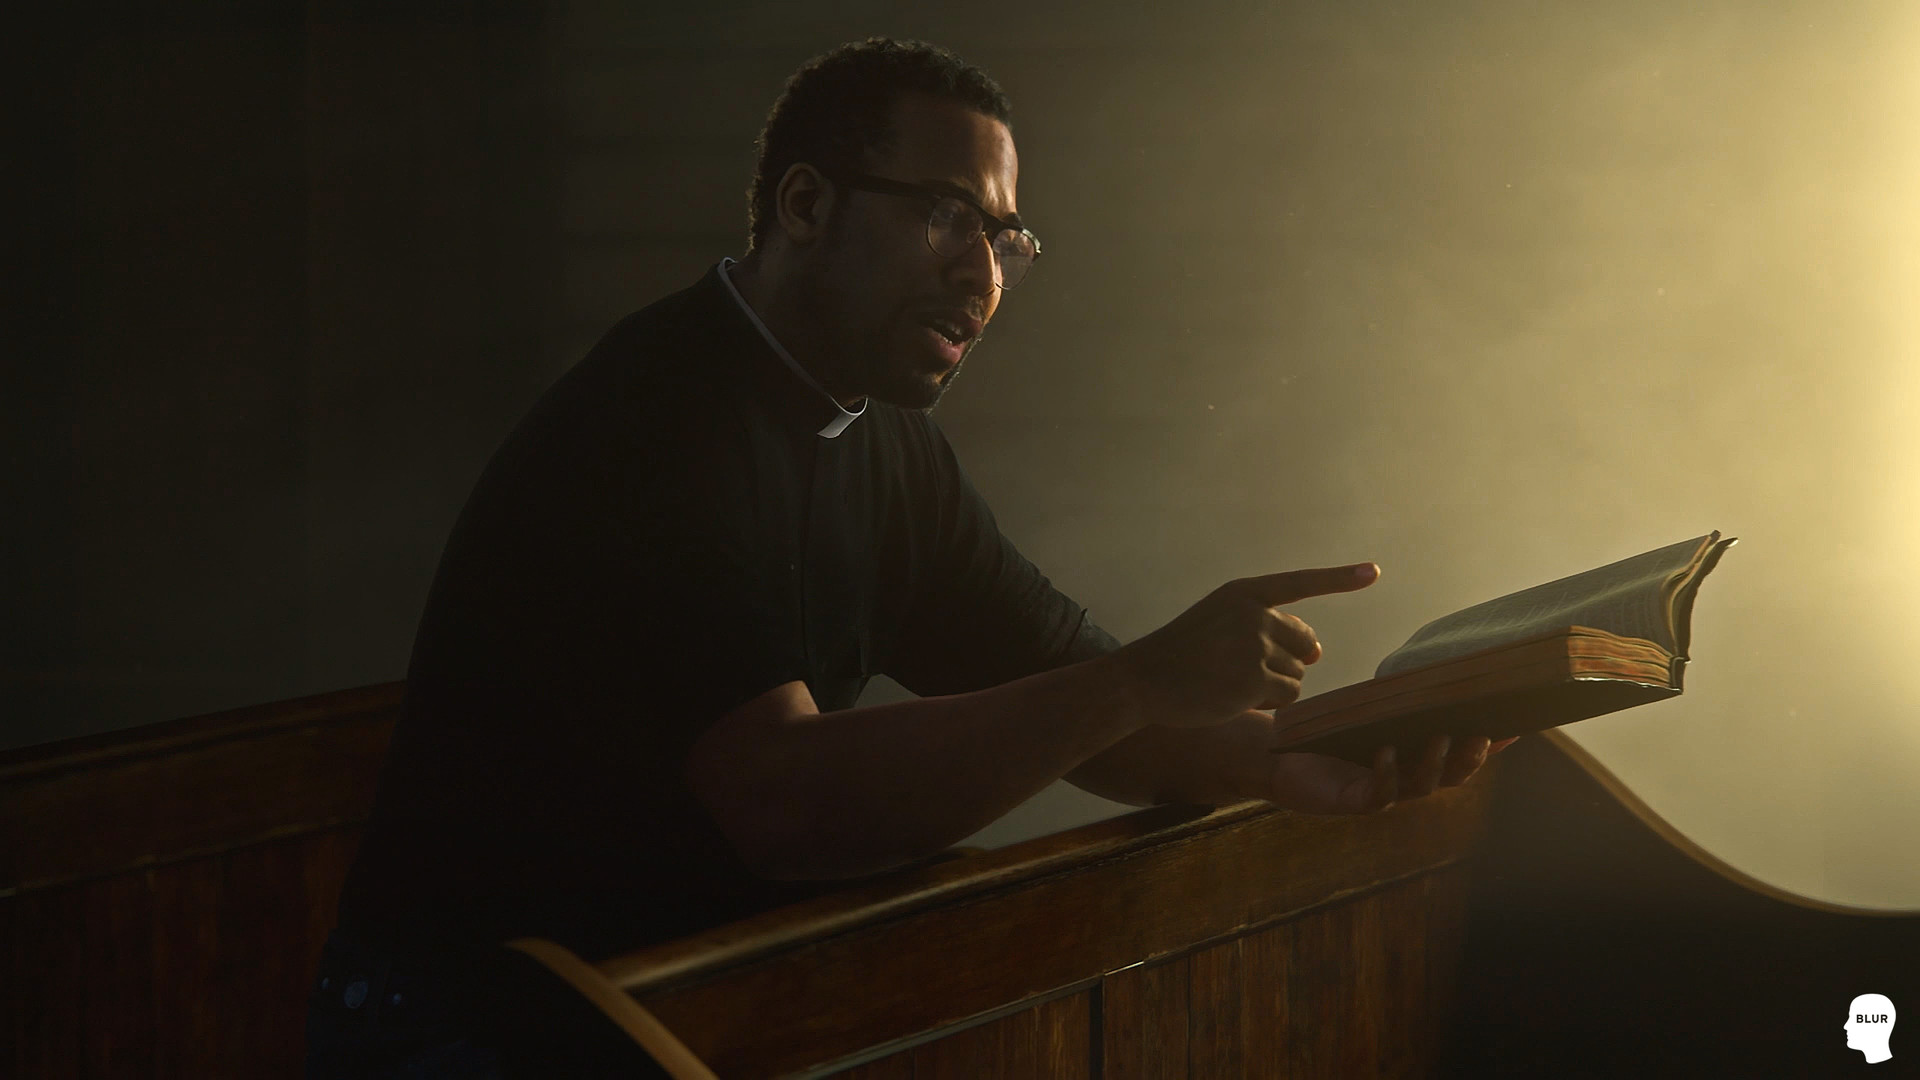 Andrew averkin far cry 5 pastor jerome jeffries 05